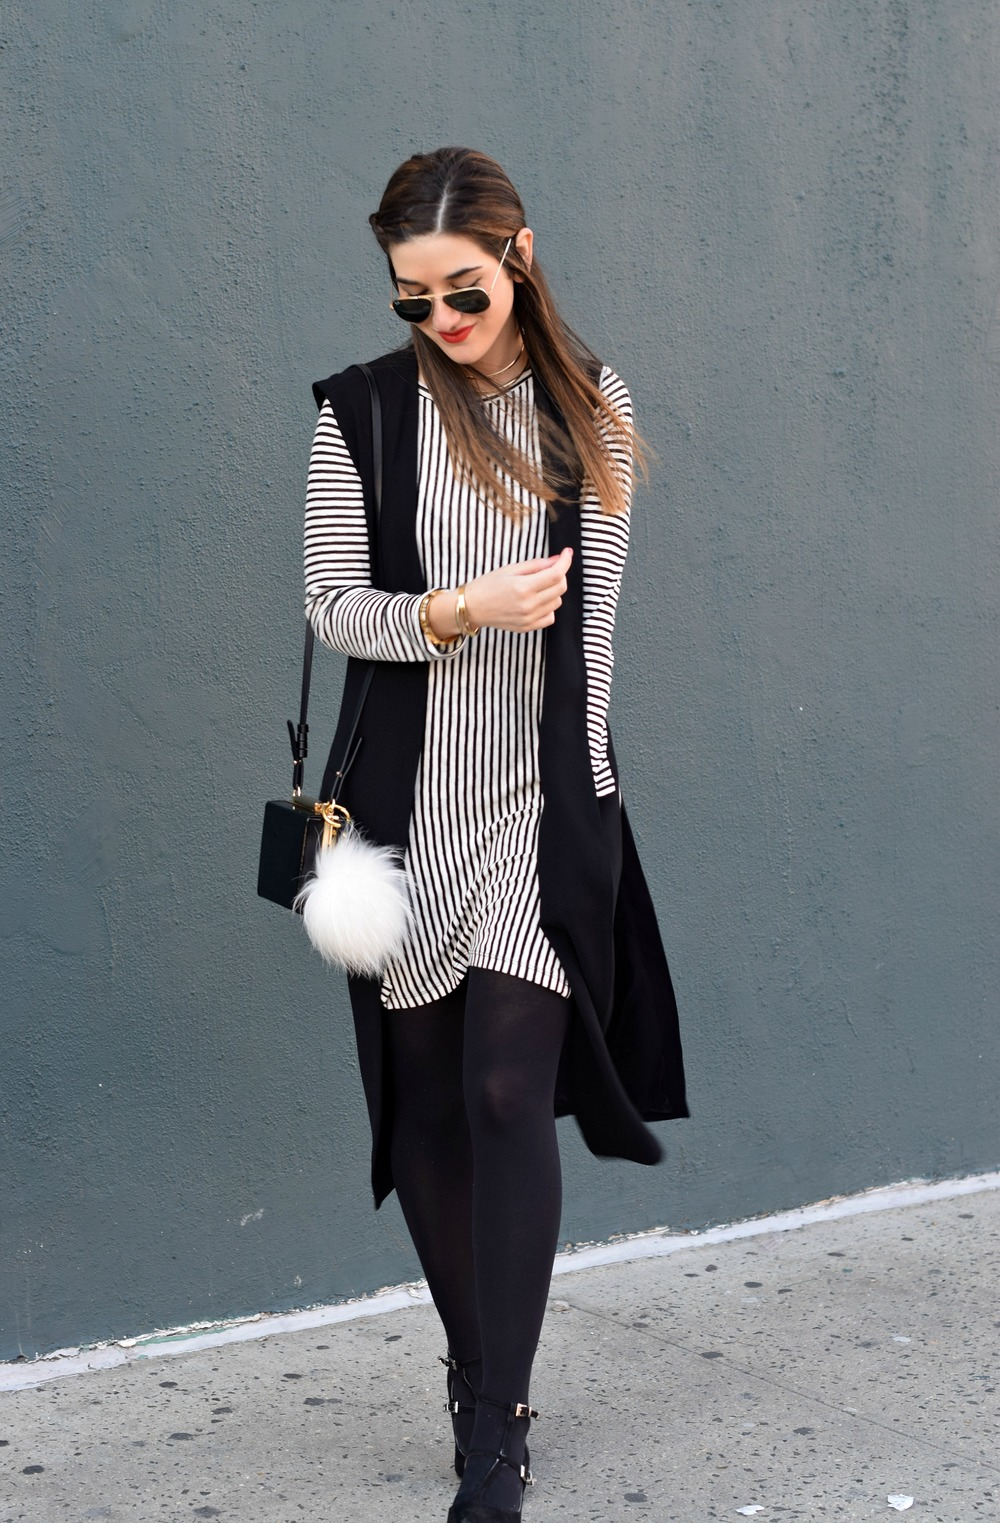 Black and White Striped Shirt Dress Long Vest Louboutins & Love Fashion Blog Esther Santer NYC Street Style Blogger RayBan Aviator Sunglasses OOTD Outfit Inspiration Inspo Girl Women Gold Jewelry Bracelets Ombre Pom Pom Choker Zara Bag Tights Heels .jpg